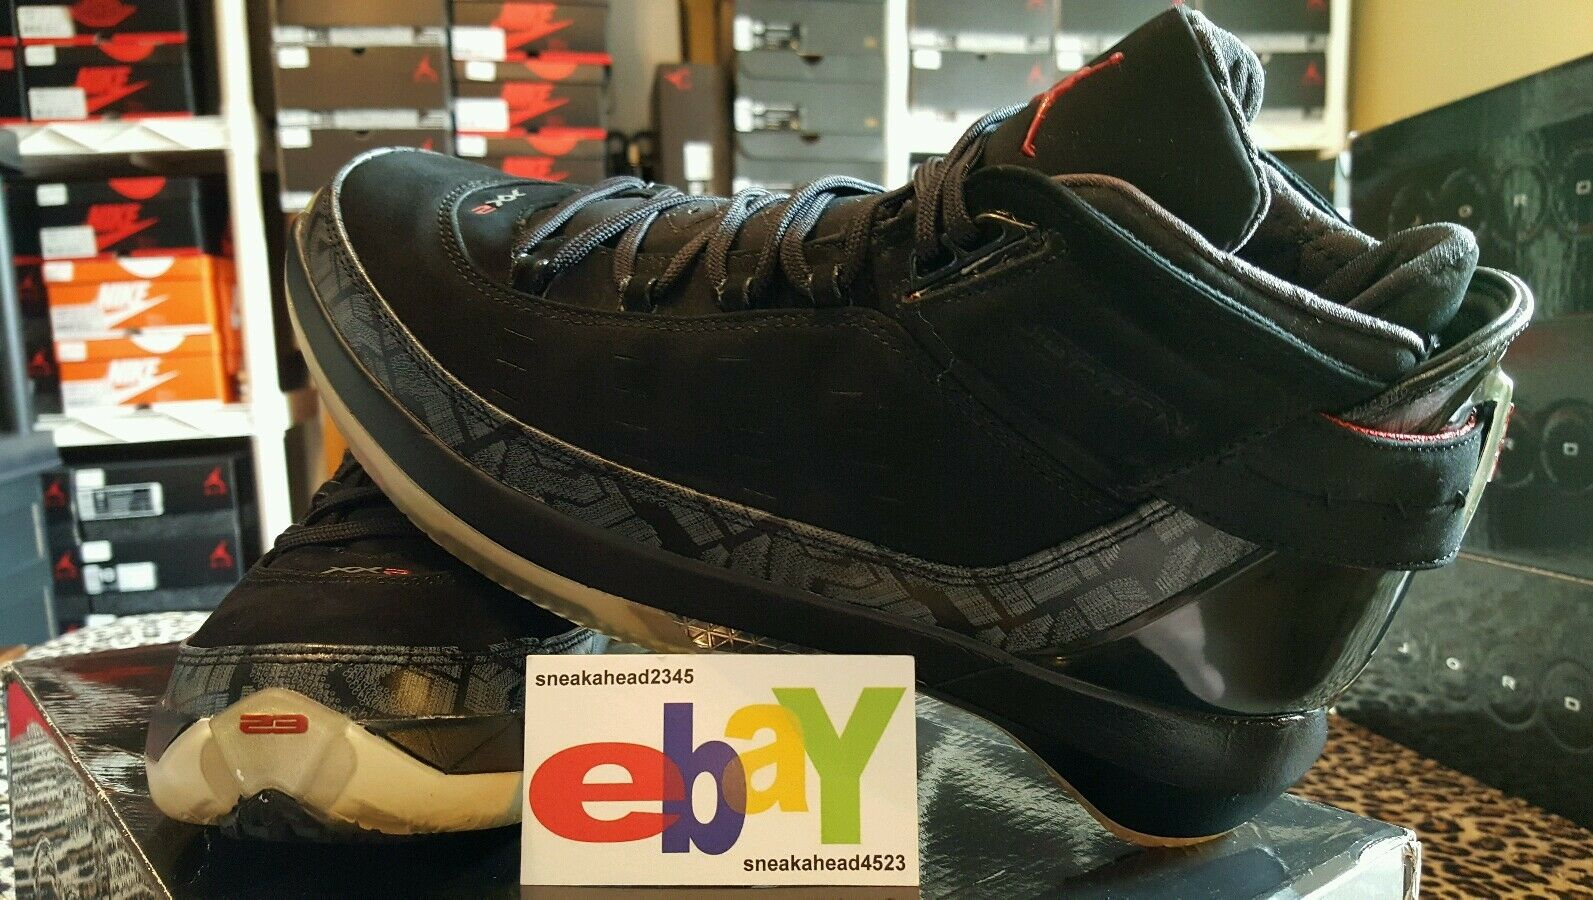 Nike Air Jordan XX2 22 PE SE 08/14/2018 BLK/MTLLC SLVR-DRK CHRCL-VRST 317131 002 Cheap and beautiful fashion